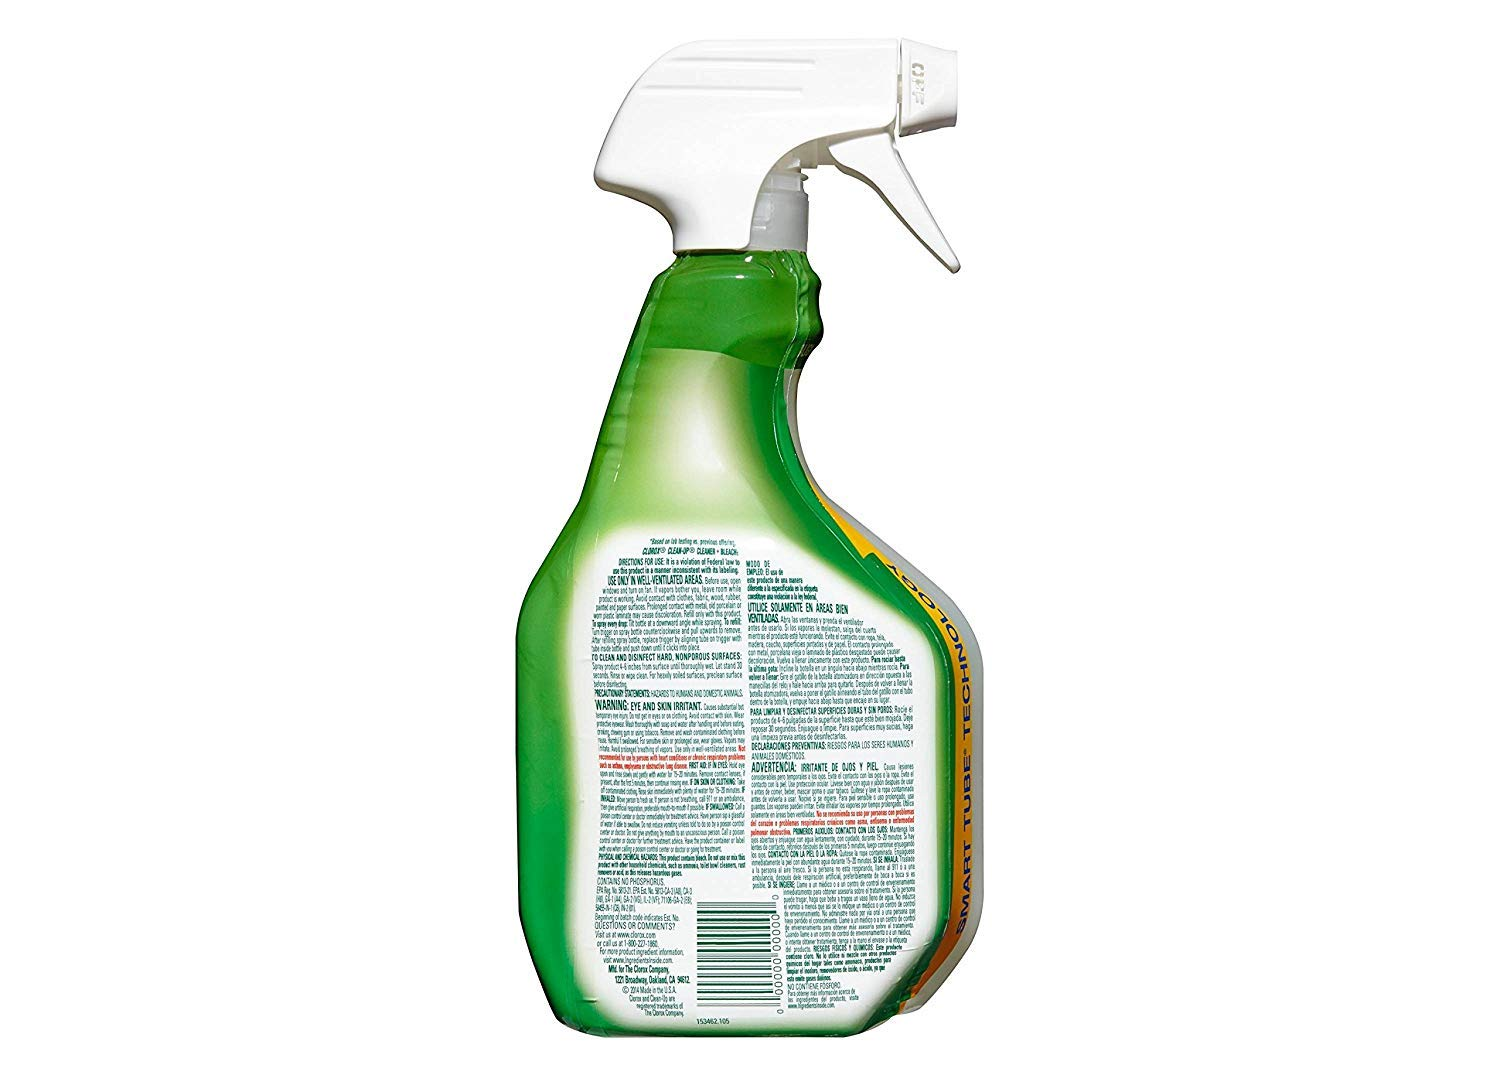 Clean-Up with Bleach, 32 fl oz Trigger Spray Bottle (Pack of 4) by Clorox (Image #4)